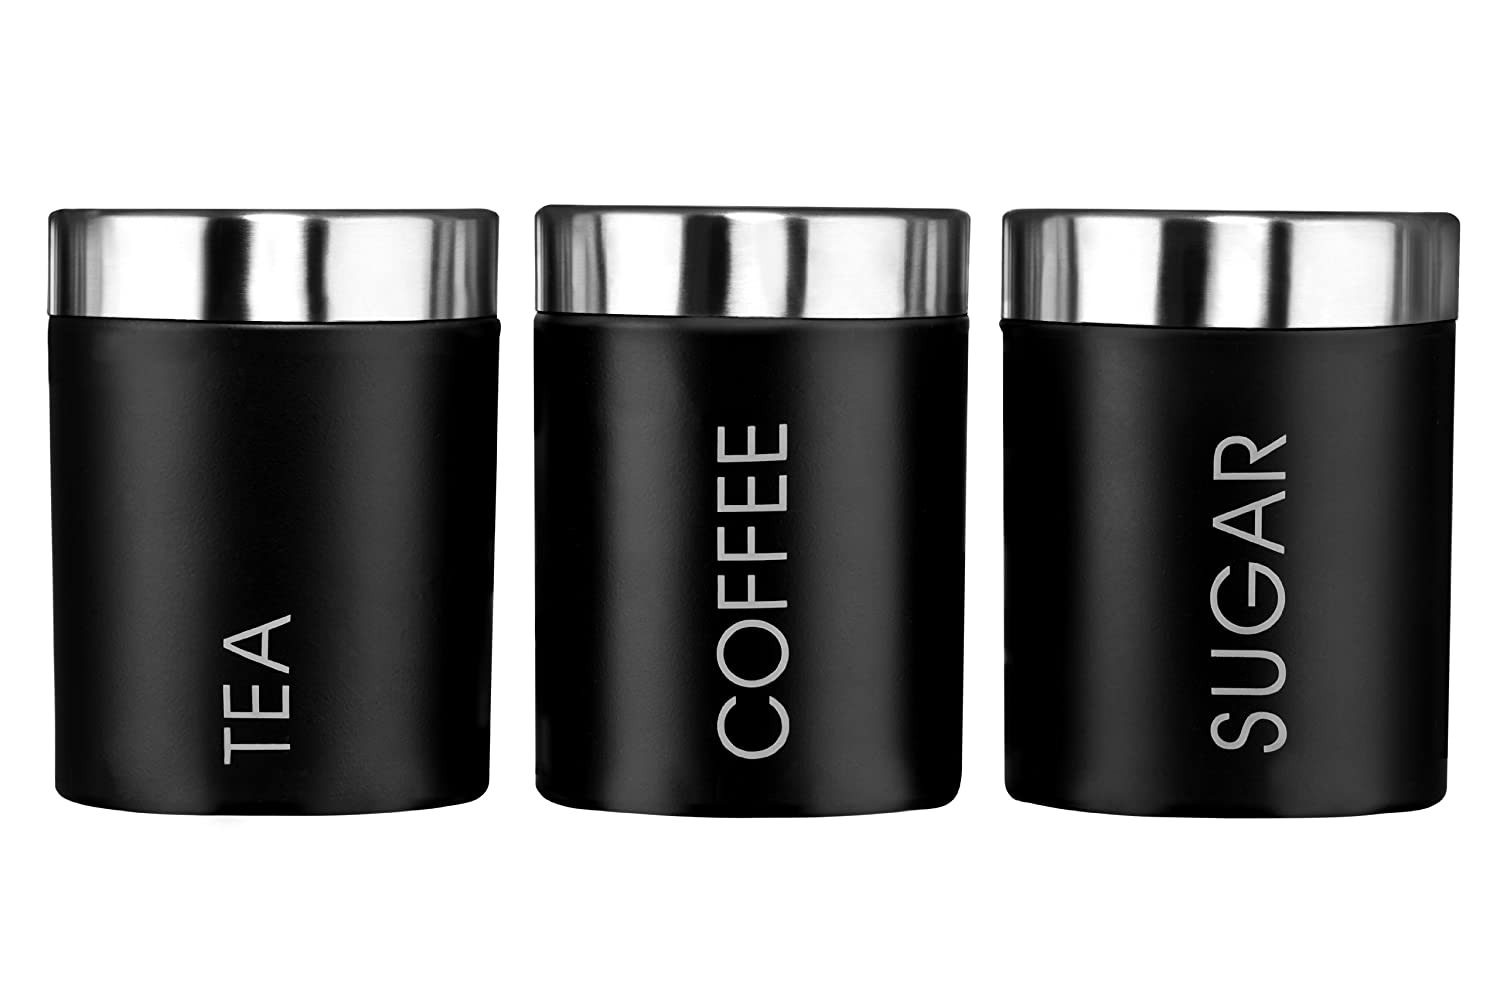 Premier Housewares Liberty Tea, Coffee and Sugar Canisters - Black, Set of 3